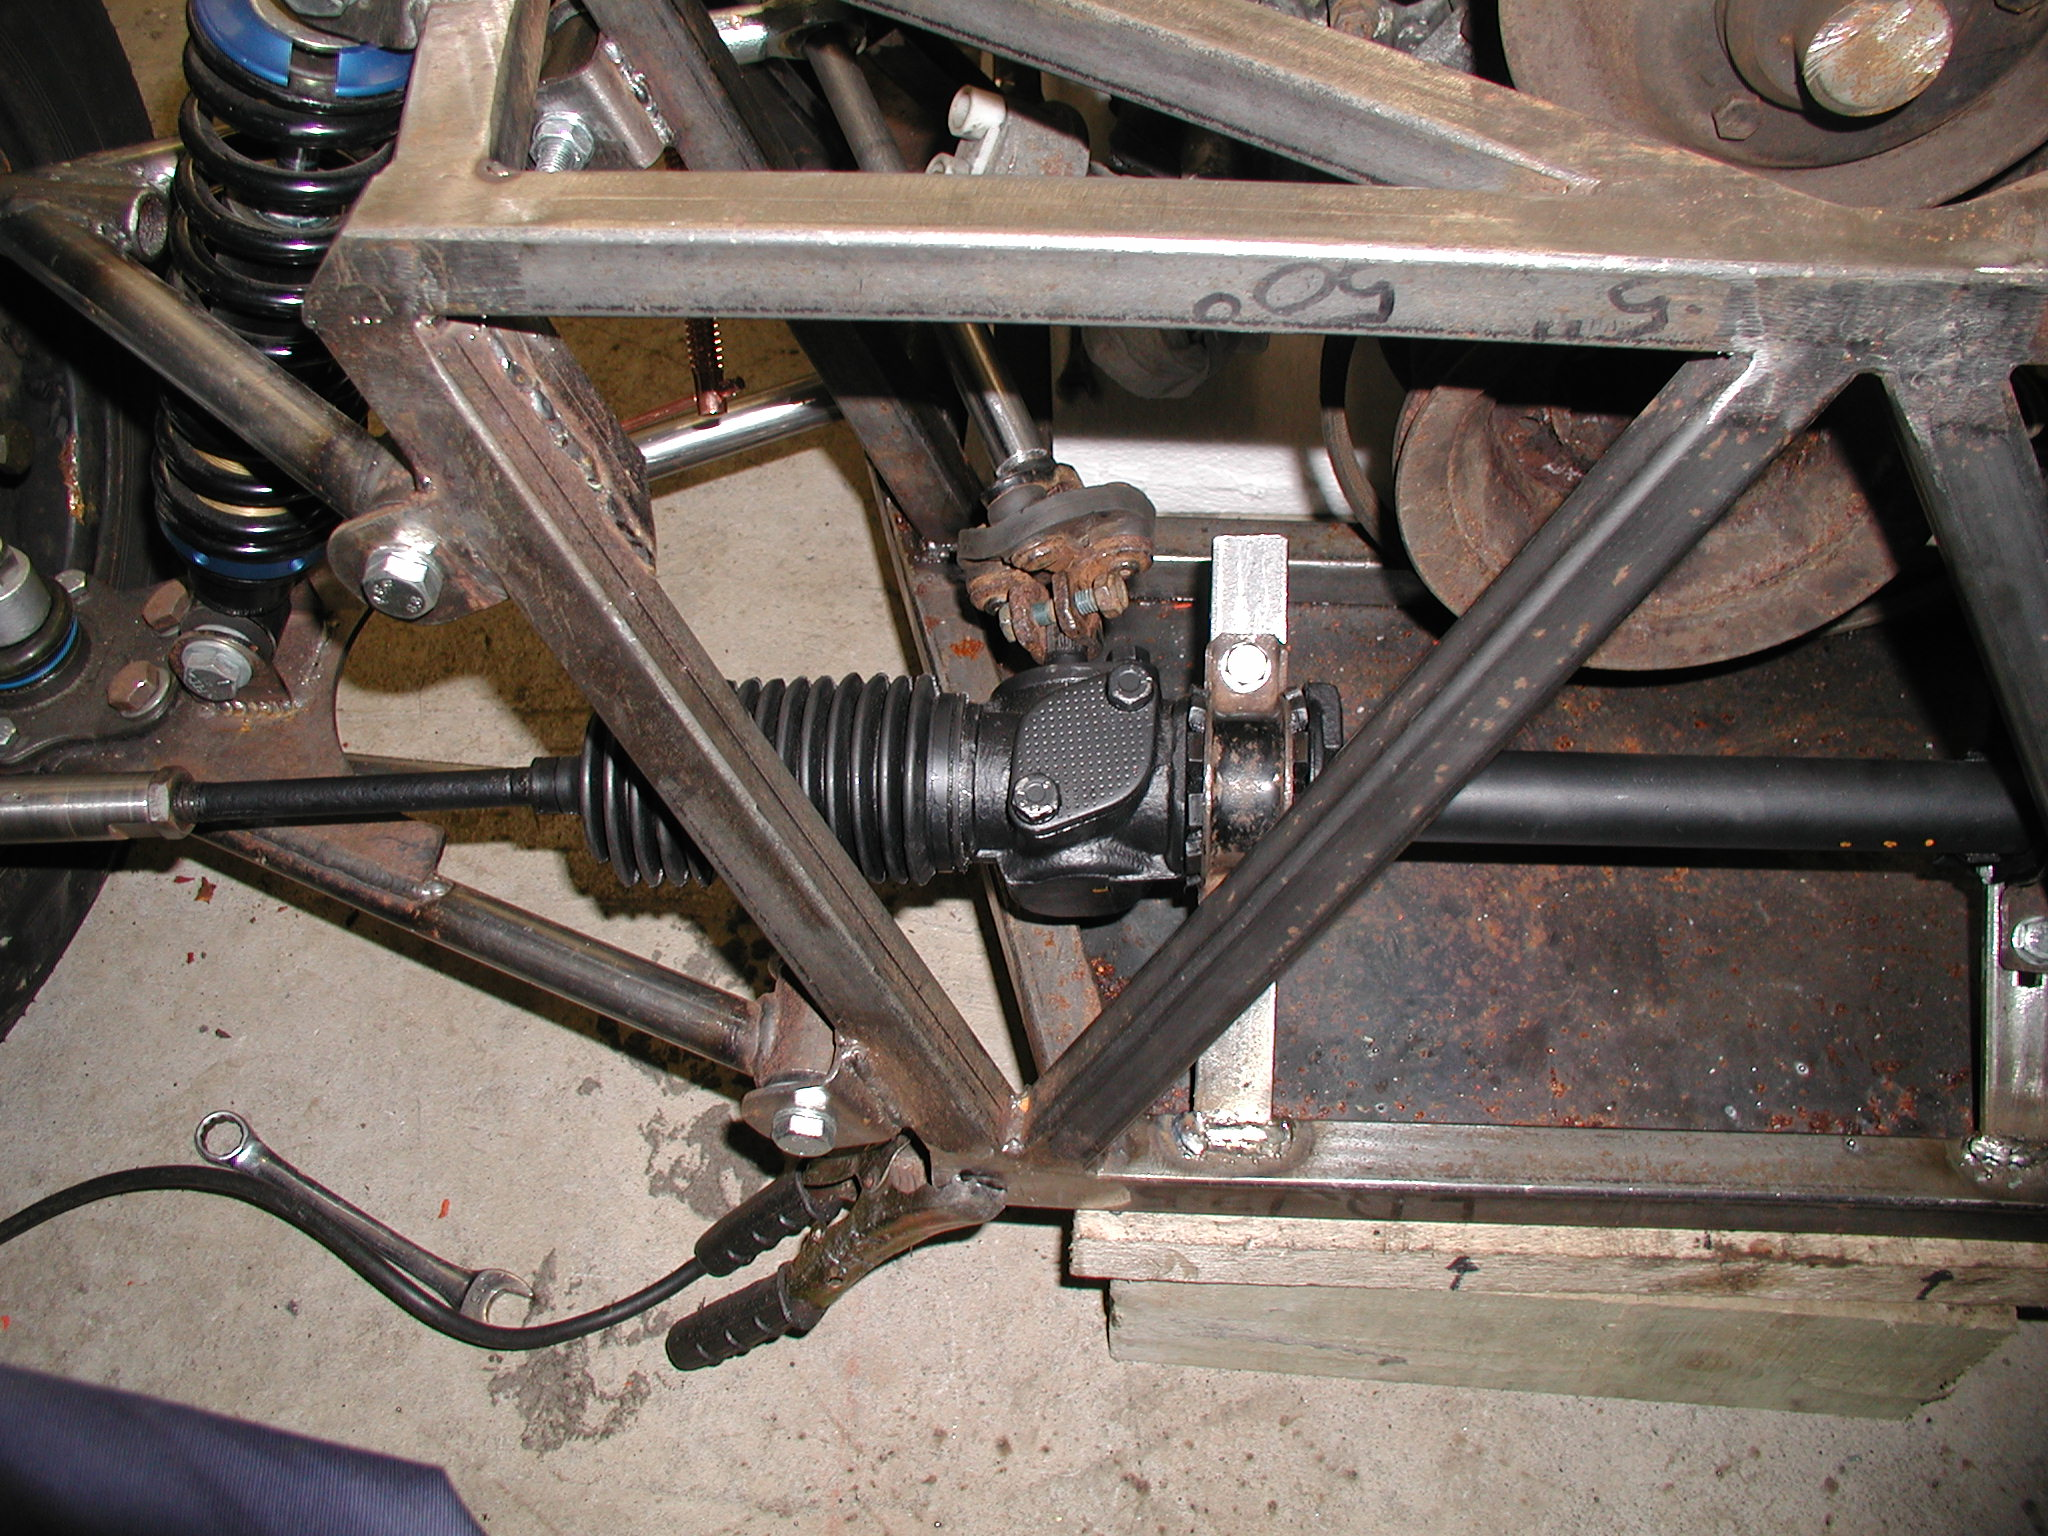 Here you can see the steering rack in position and the brackets welded at the front. I still need to stiffen this with additional support once I've set the position correctly. The brackets have slots for fine adjustment to eliminate potential bump steer. This shouldn't be a big problem as the Escort MK2 rack is only 6 mm short of ideal on my chassis and I can adjust out any problems that this may give.